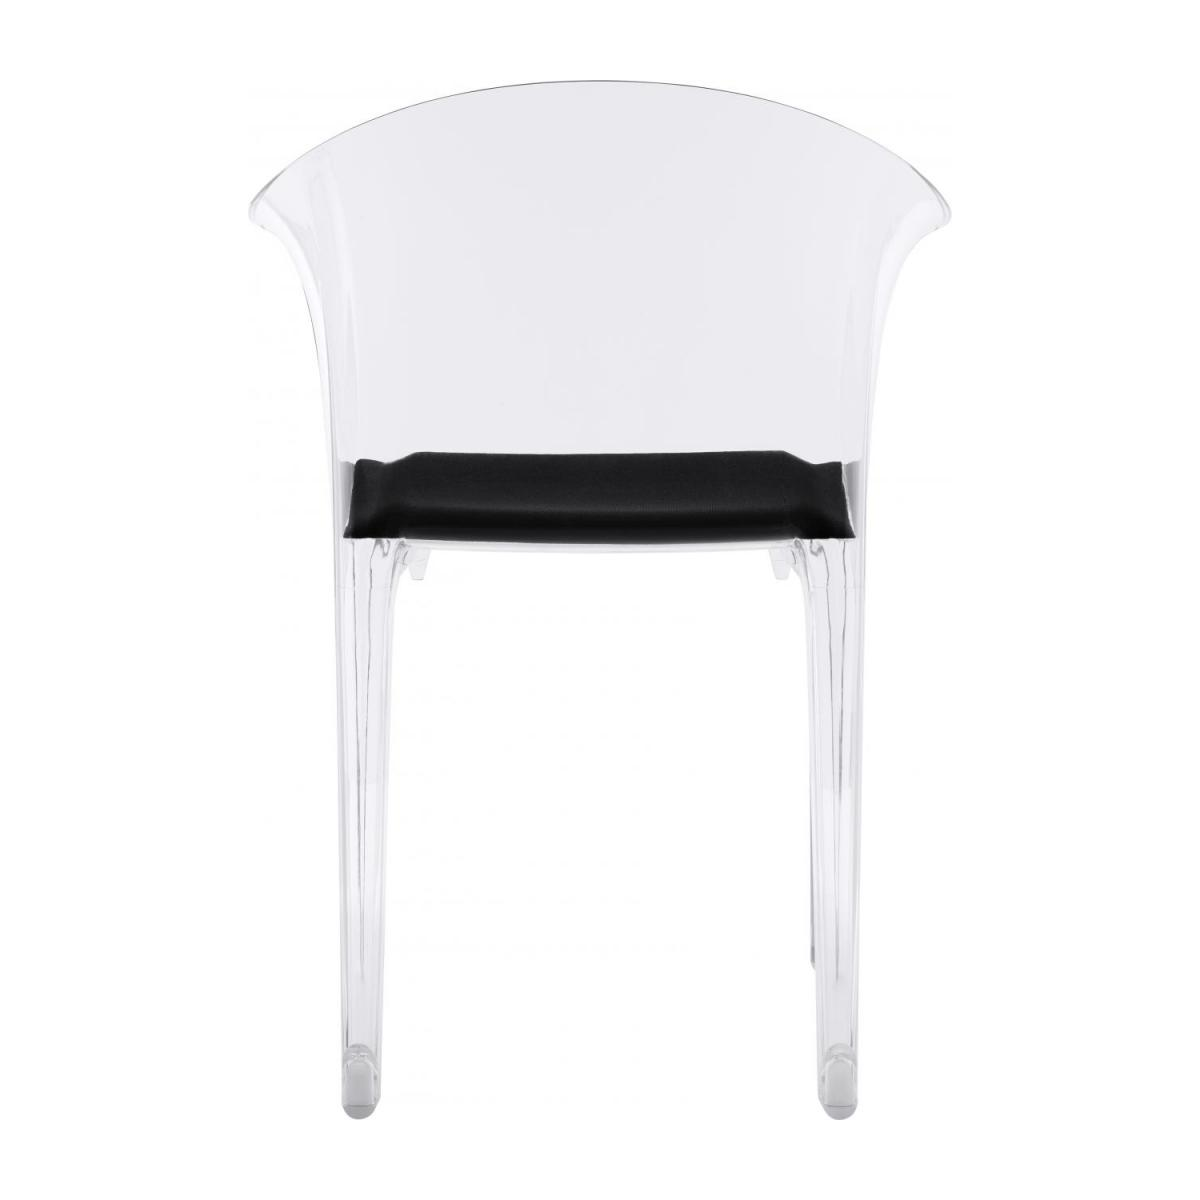 Transparent armchair in polycarbonate n°6